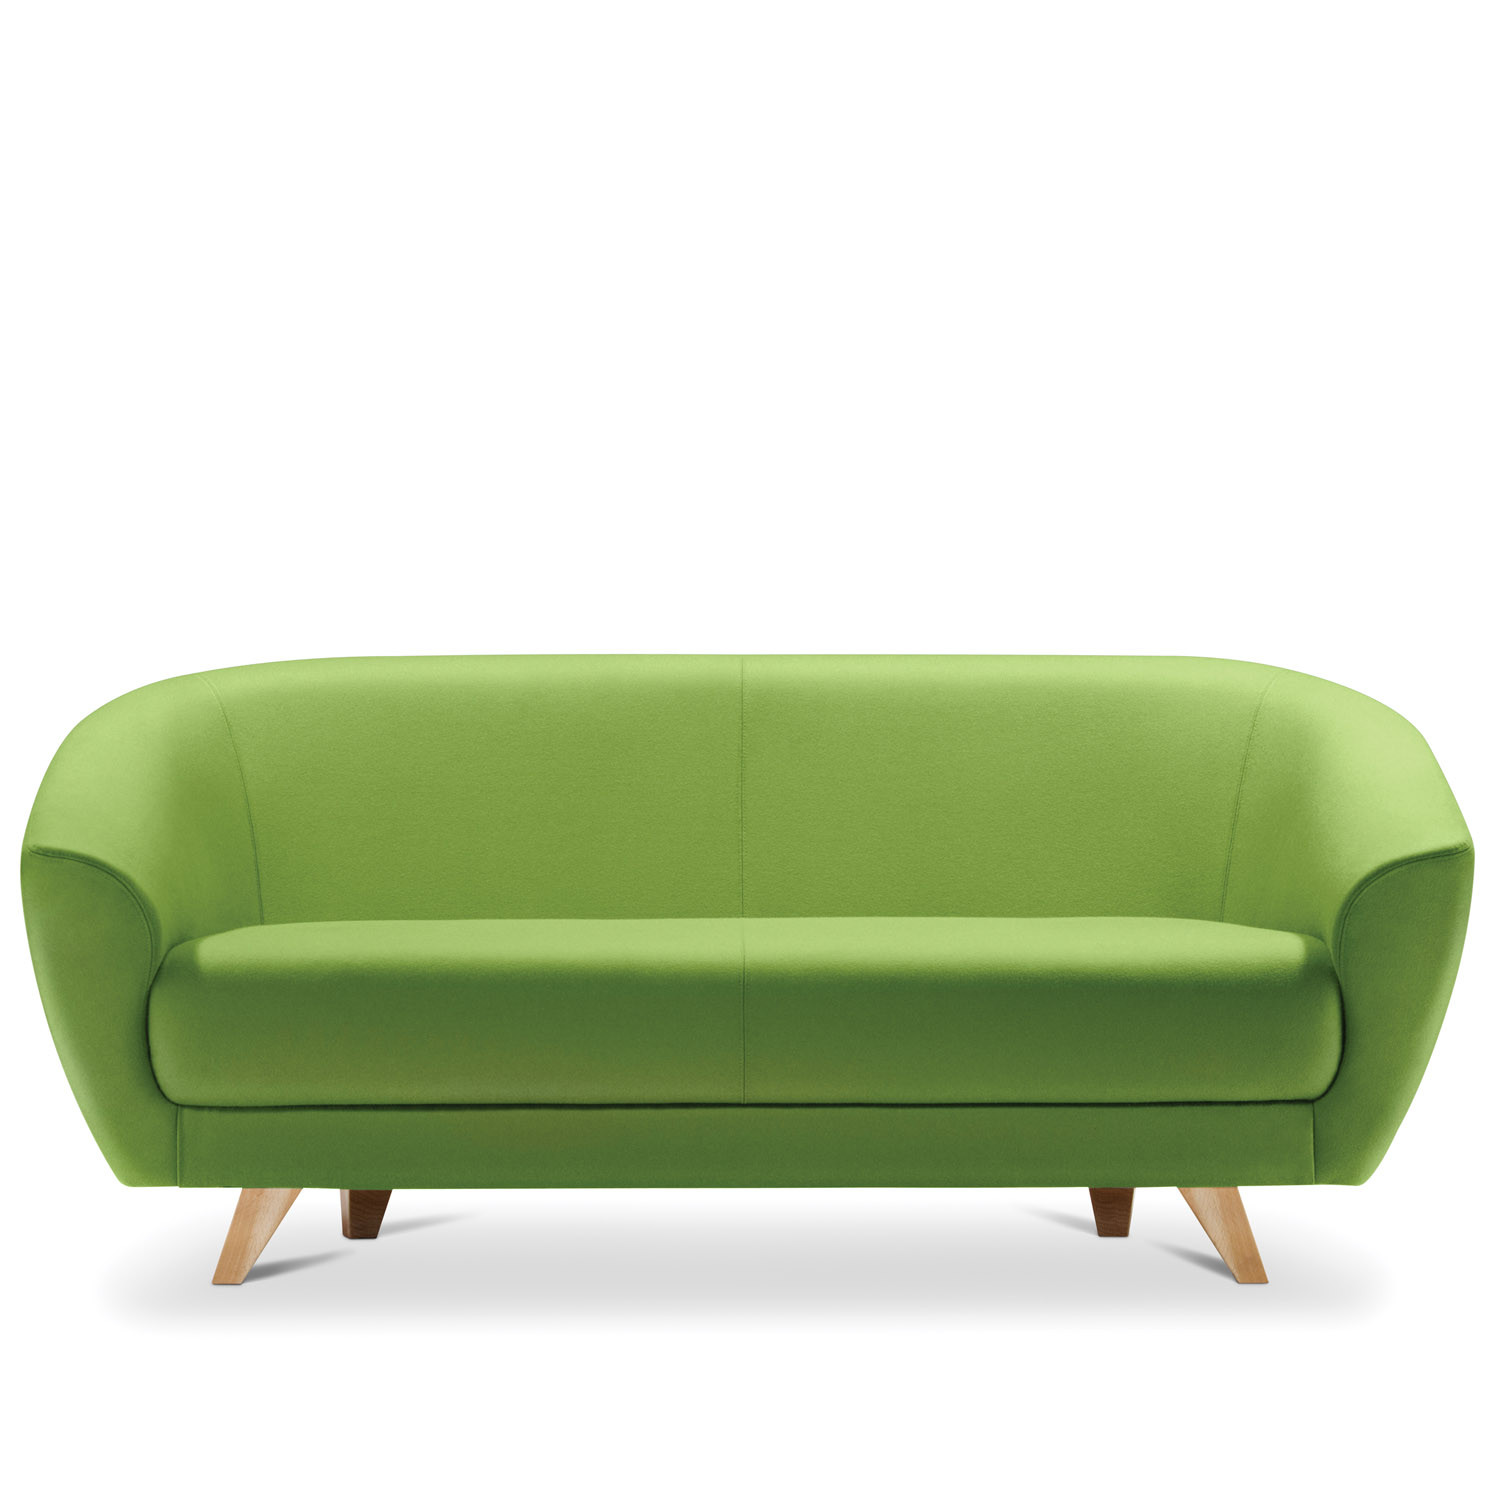 Mortimer Soft Seating